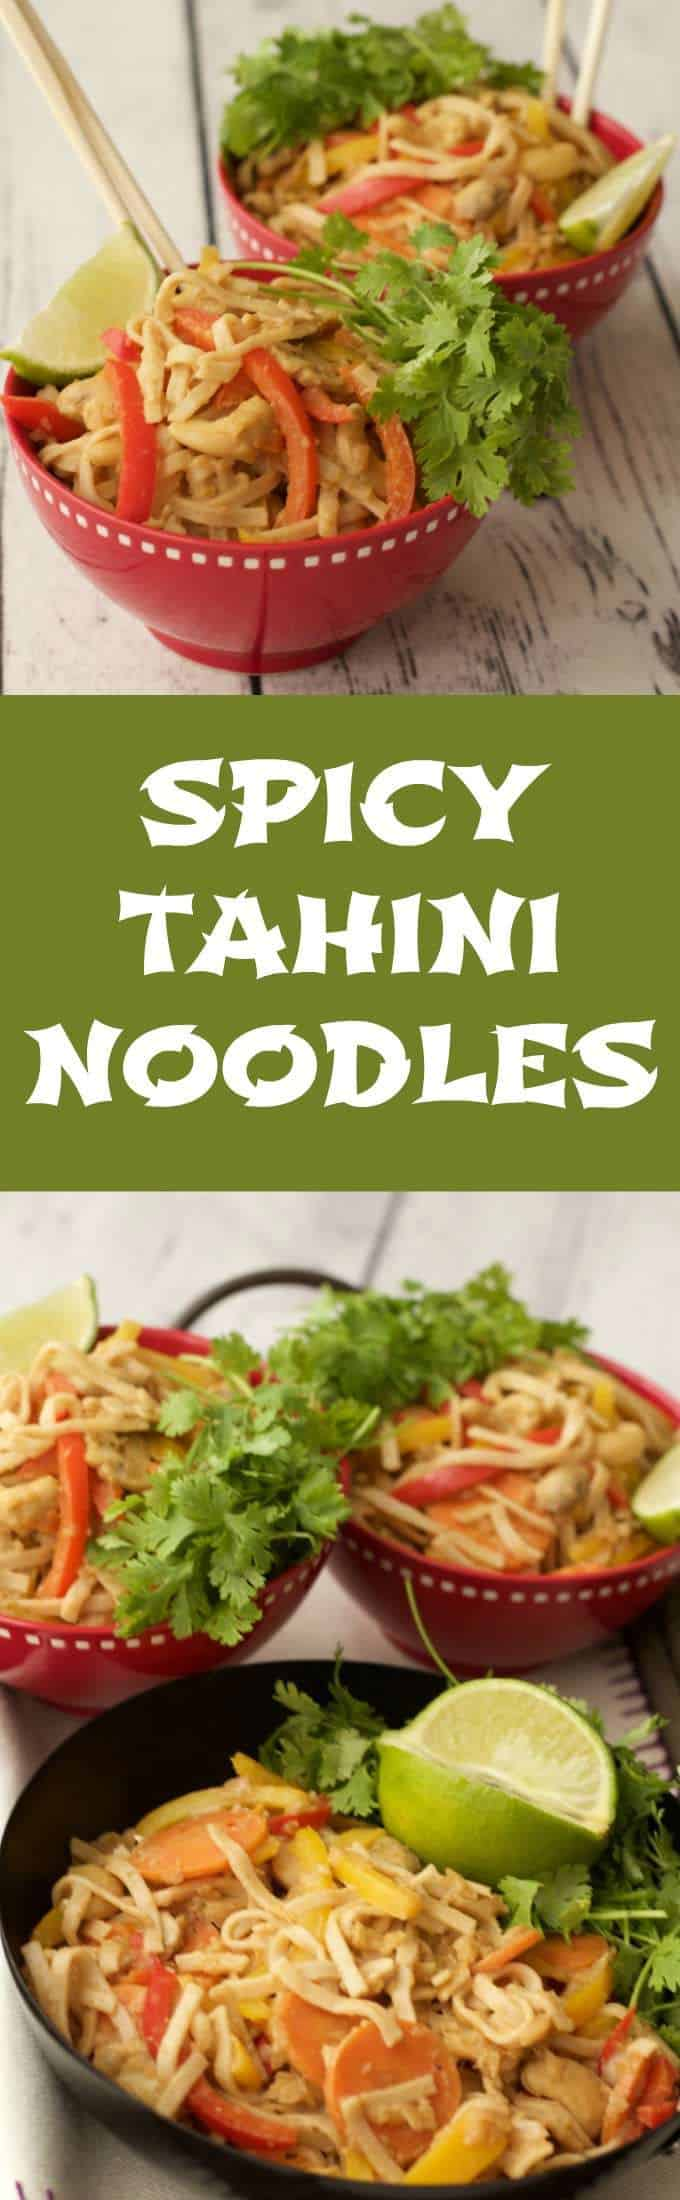 Easy #vegan noodles with a mildly spicy tahini sauce #lovingitvegan